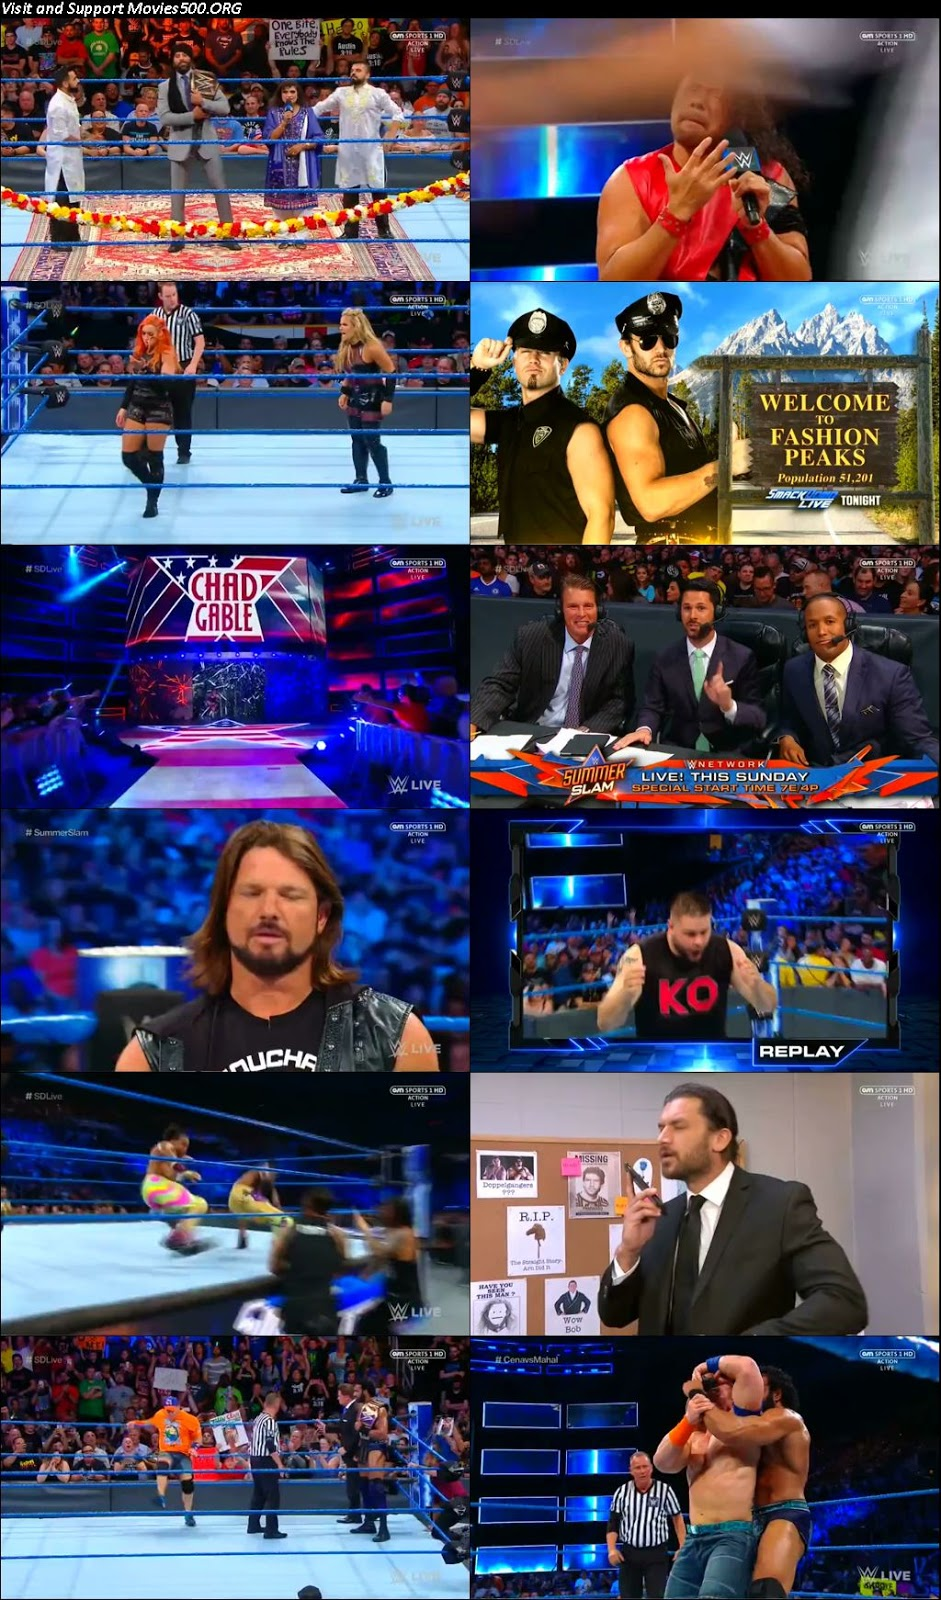 WWE Smackdown Live 15 Aug 2017 HDTV Full Show Download 720p at softwaresonly.com